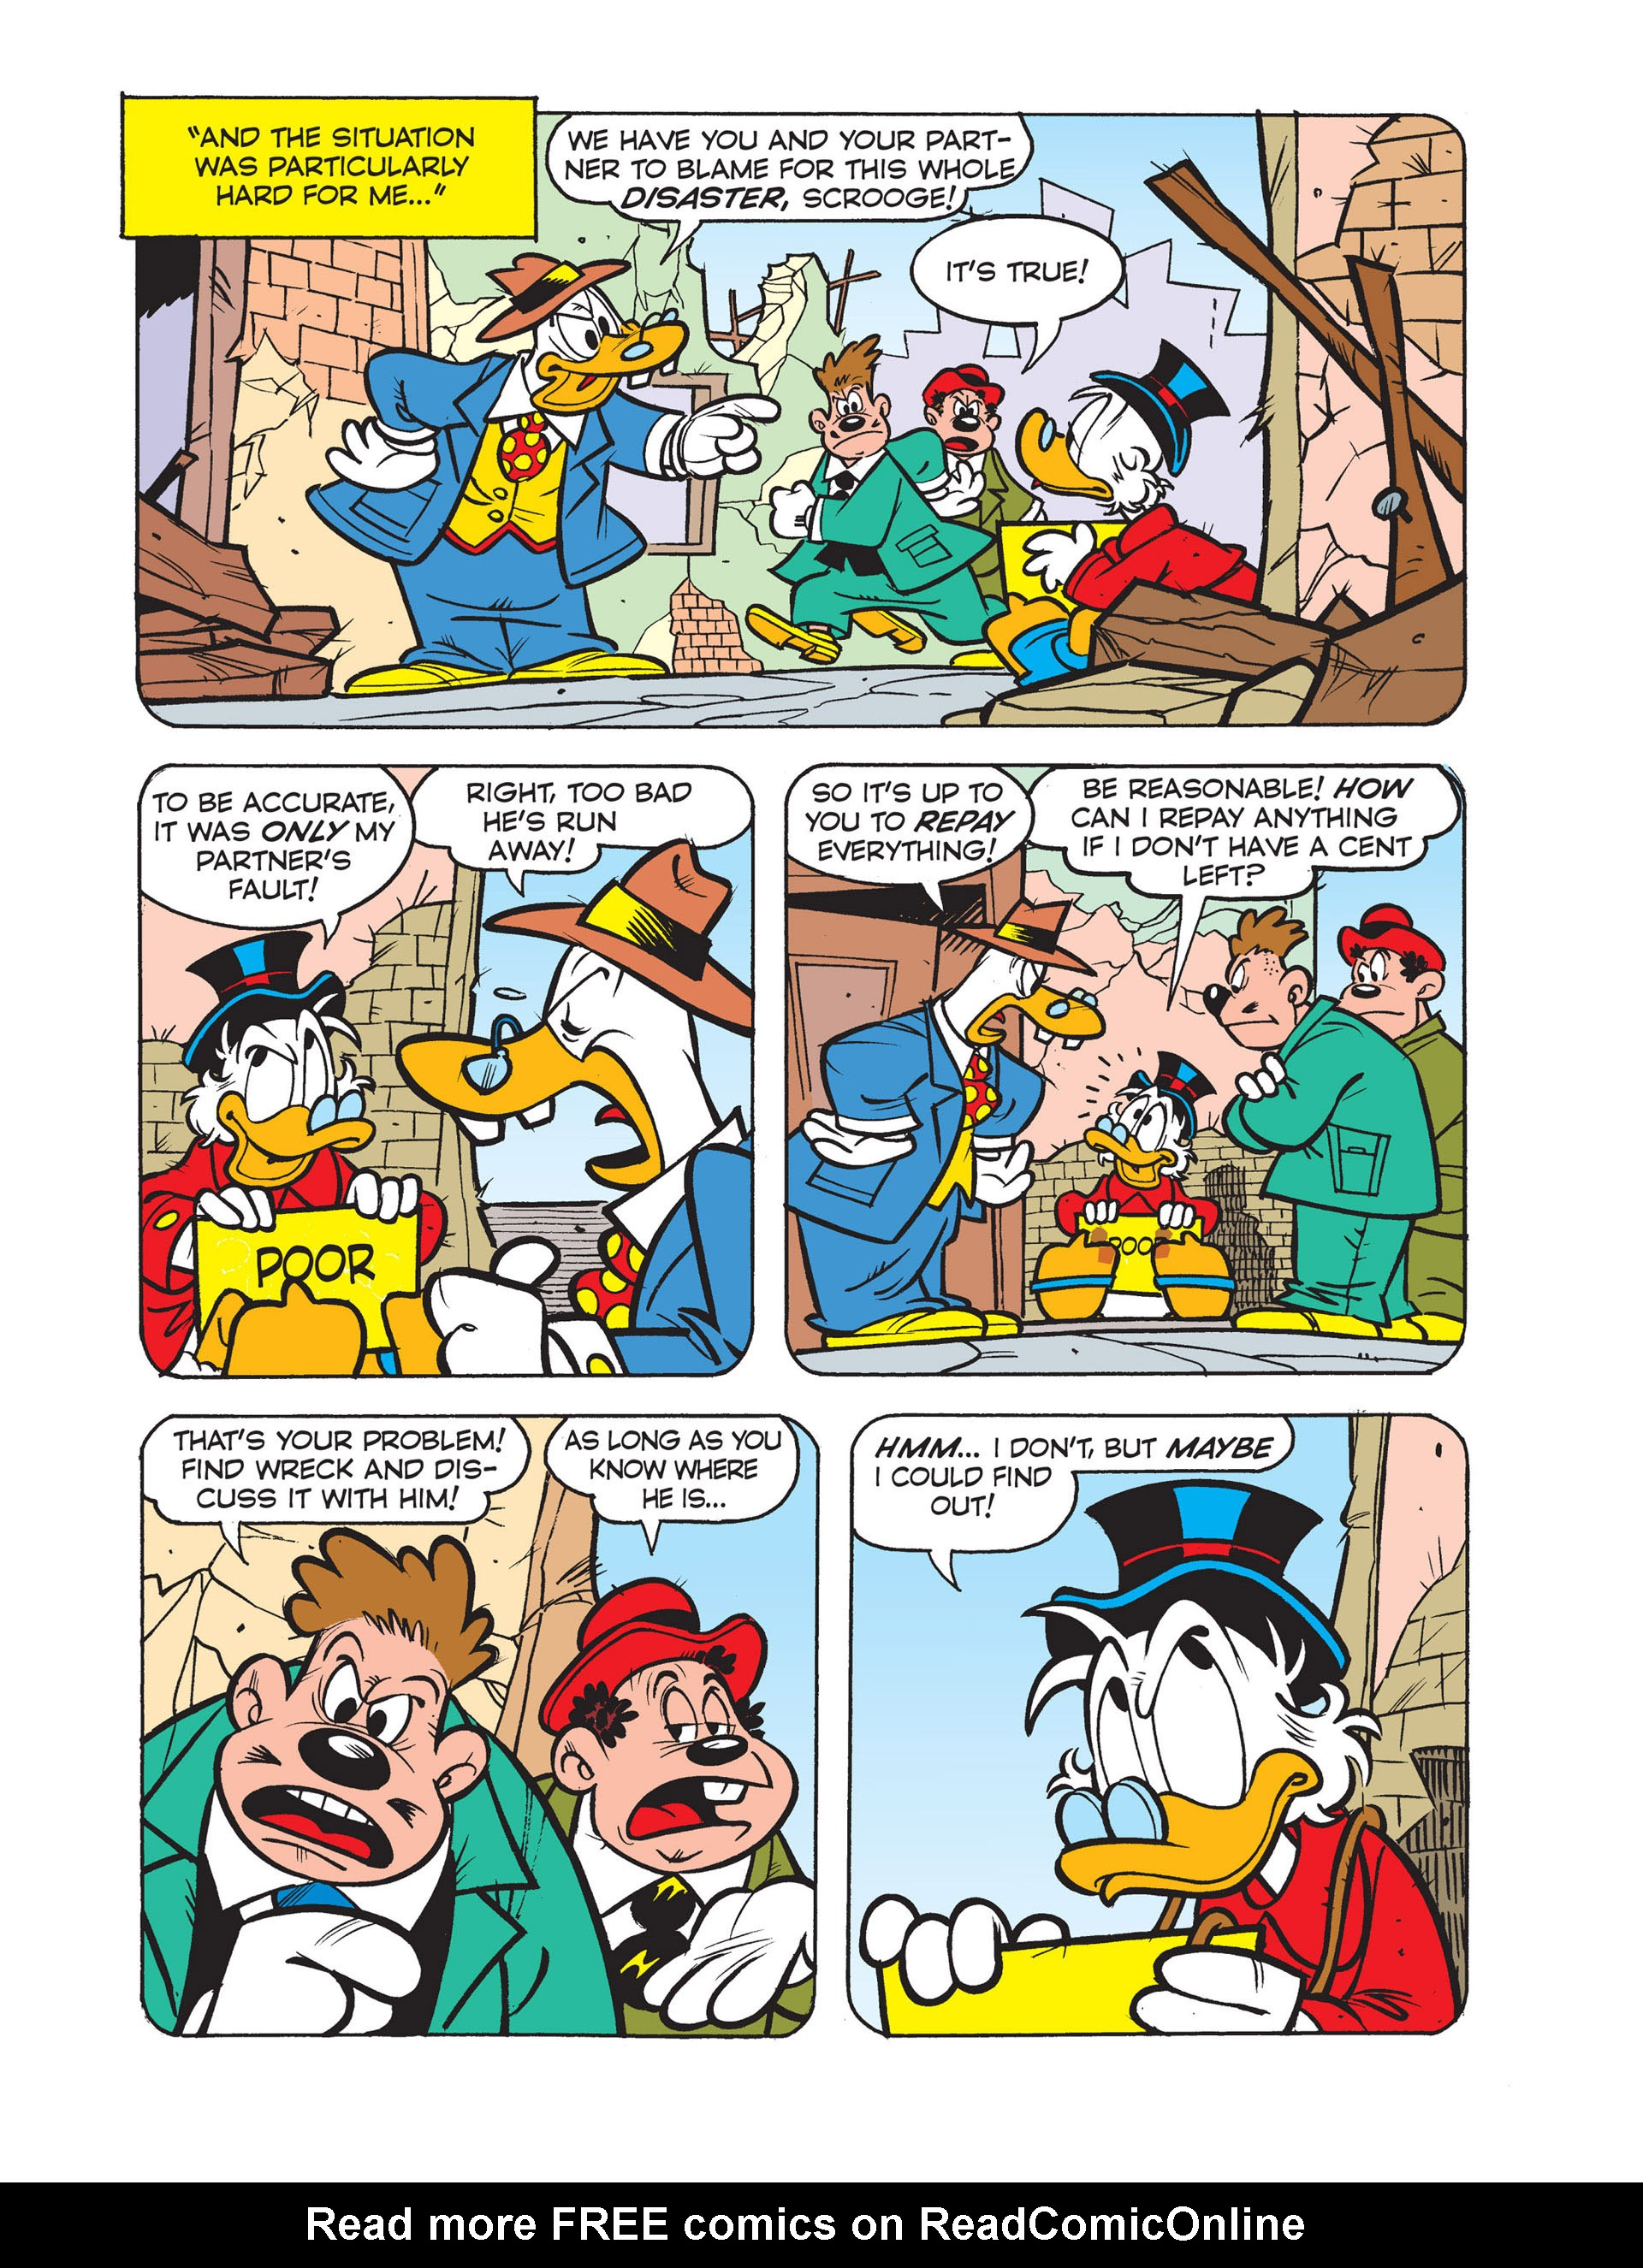 Read online All of Scrooge McDuck's Millions comic -  Issue #4 - 14